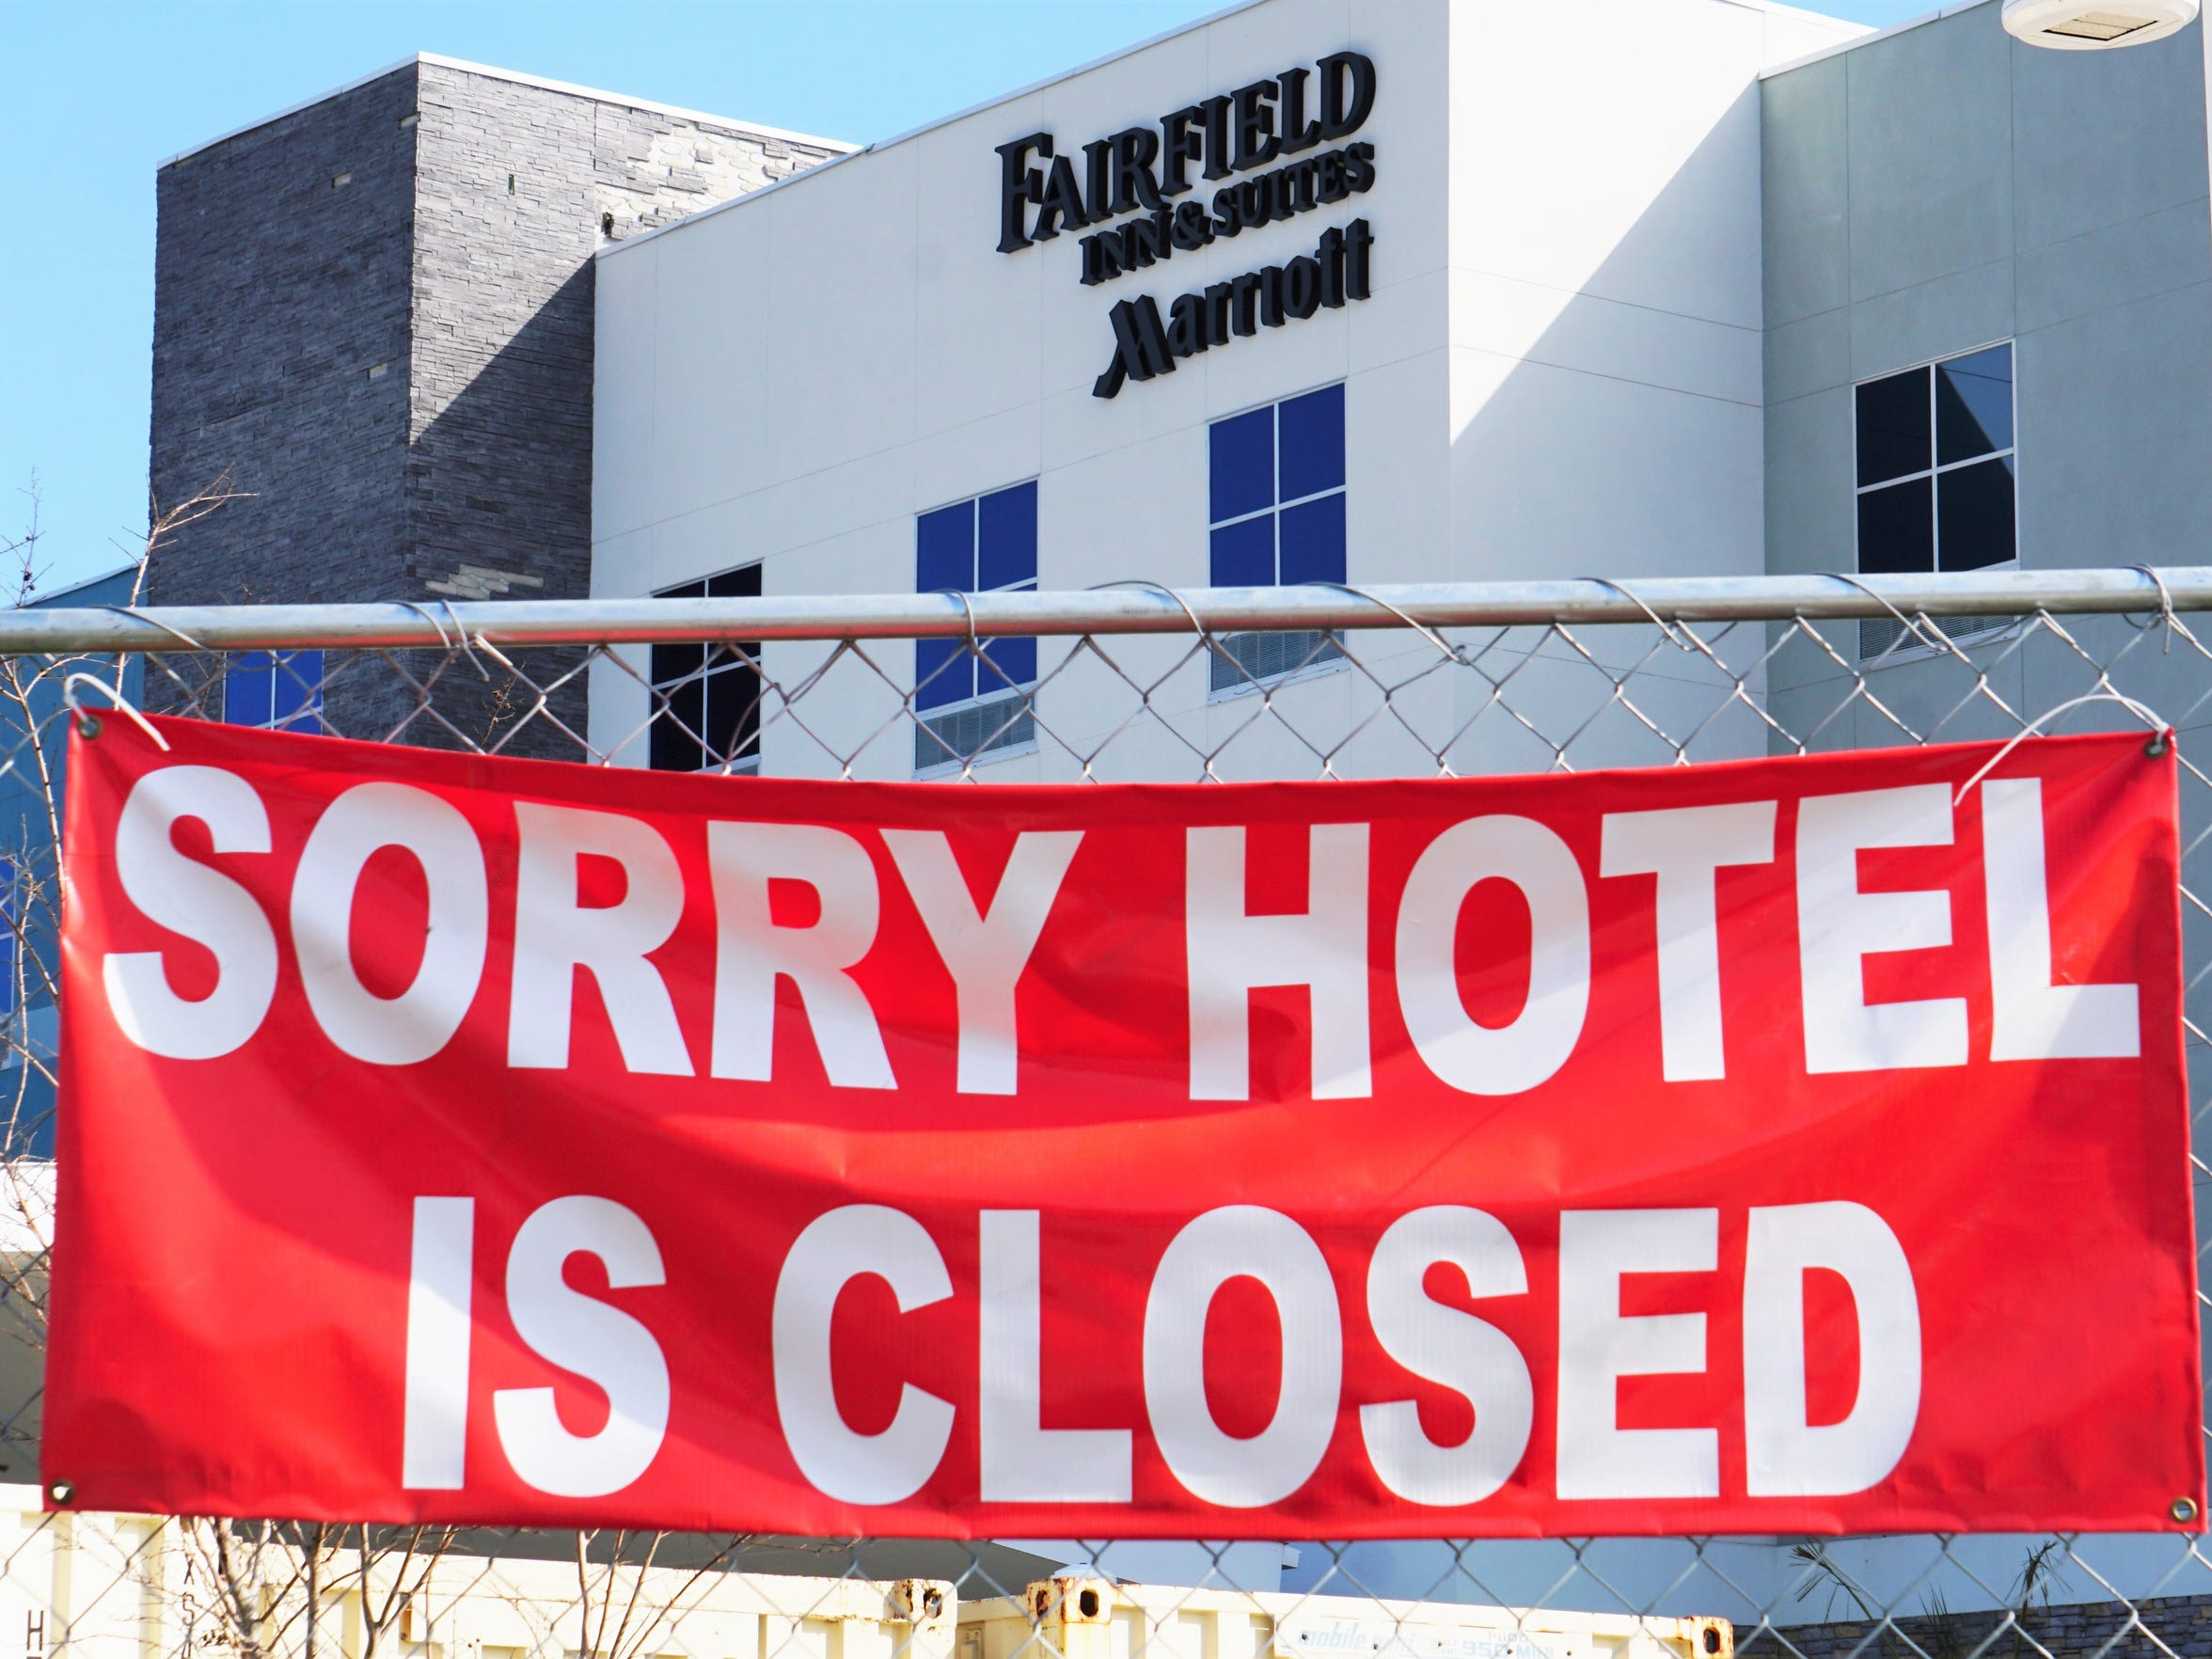 The Fairfield Inn in Rockport is still closed while it undergoes repairs six months after Hurricane Harvey struck the area. Hotels like Fairfield are needed to house tourists visiting the area for overnight or multi-day stays.